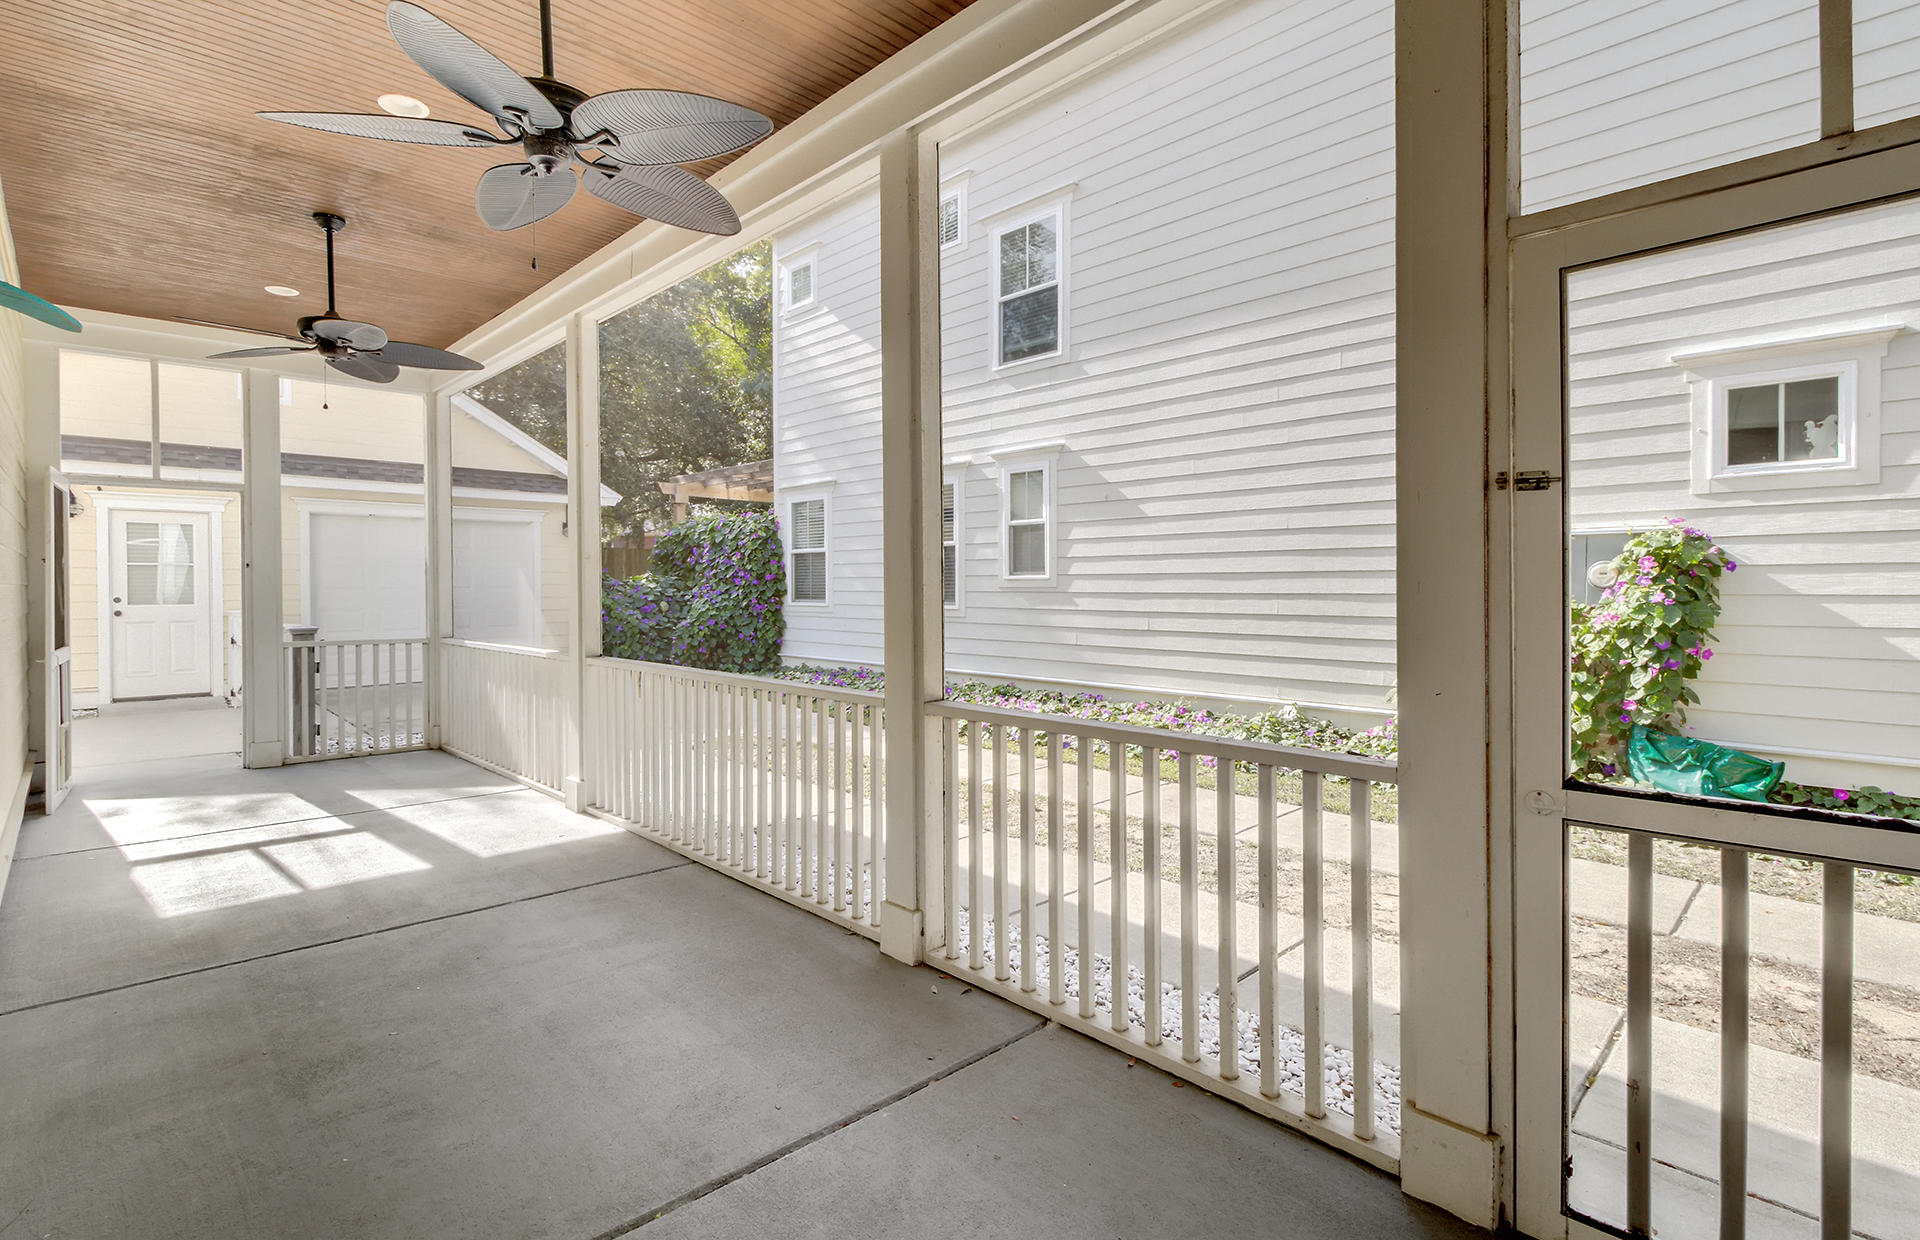 Wexford Park Homes For Sale - 1141 Wexford, Mount Pleasant, SC - 34